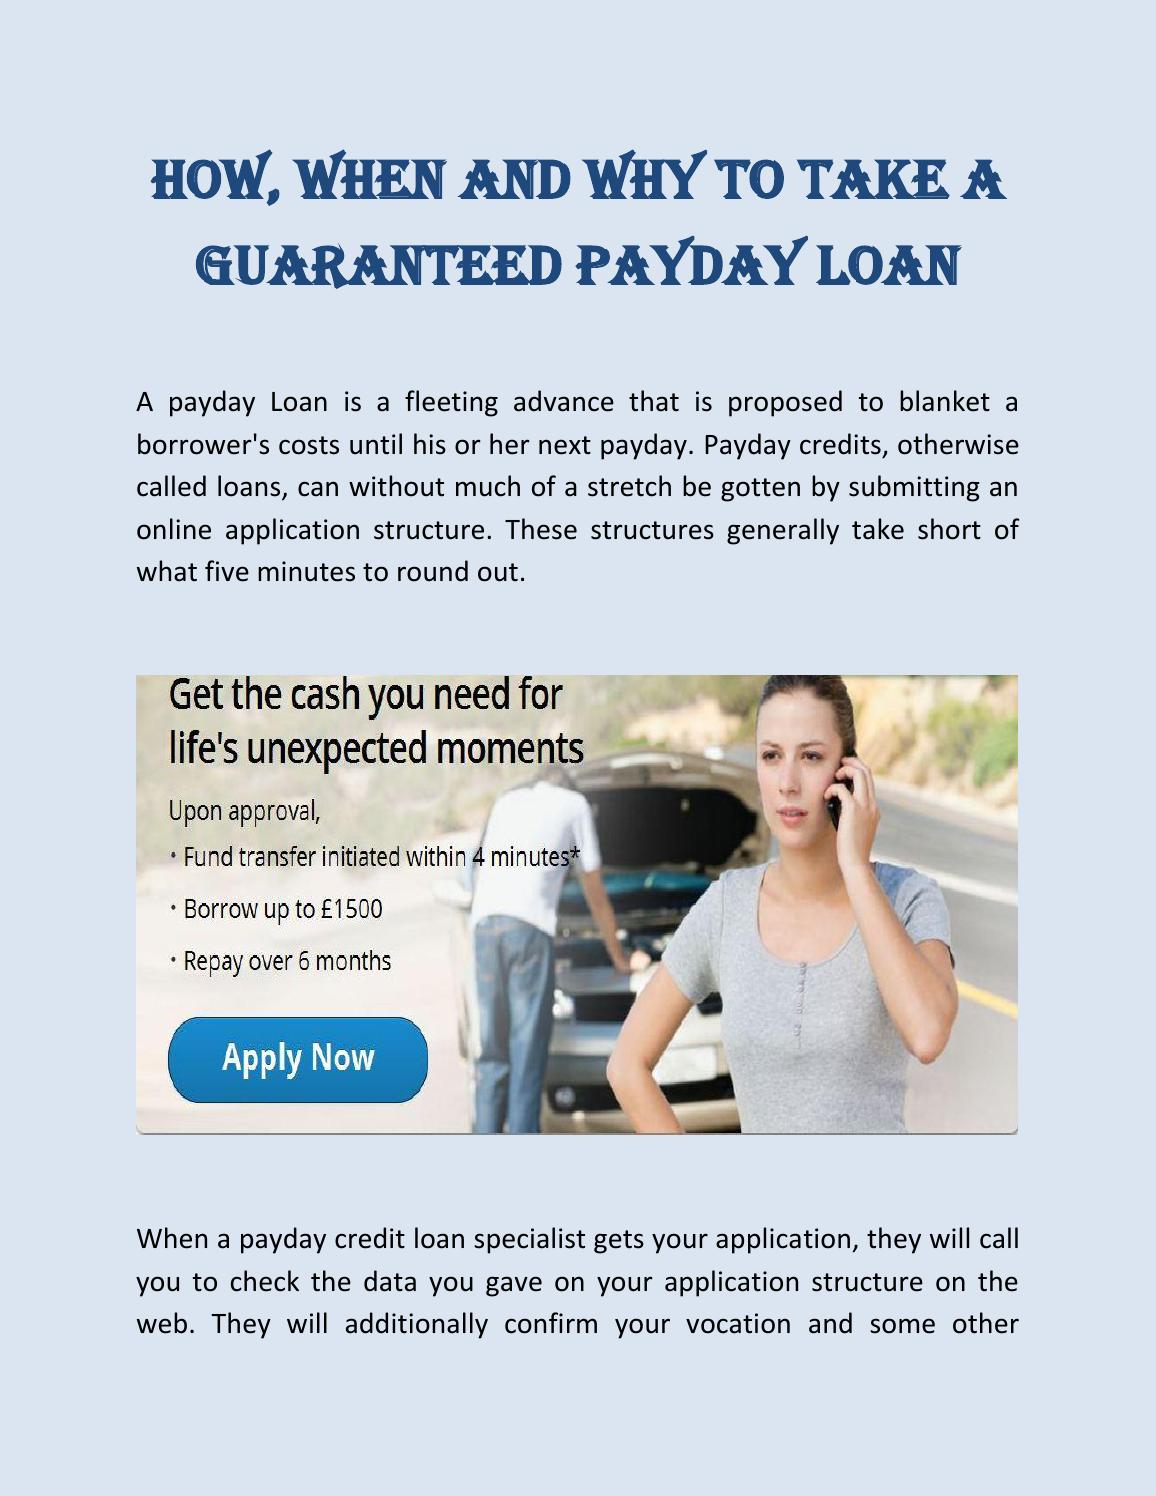 How, when and why to take a guaranteed payday loans by Cash